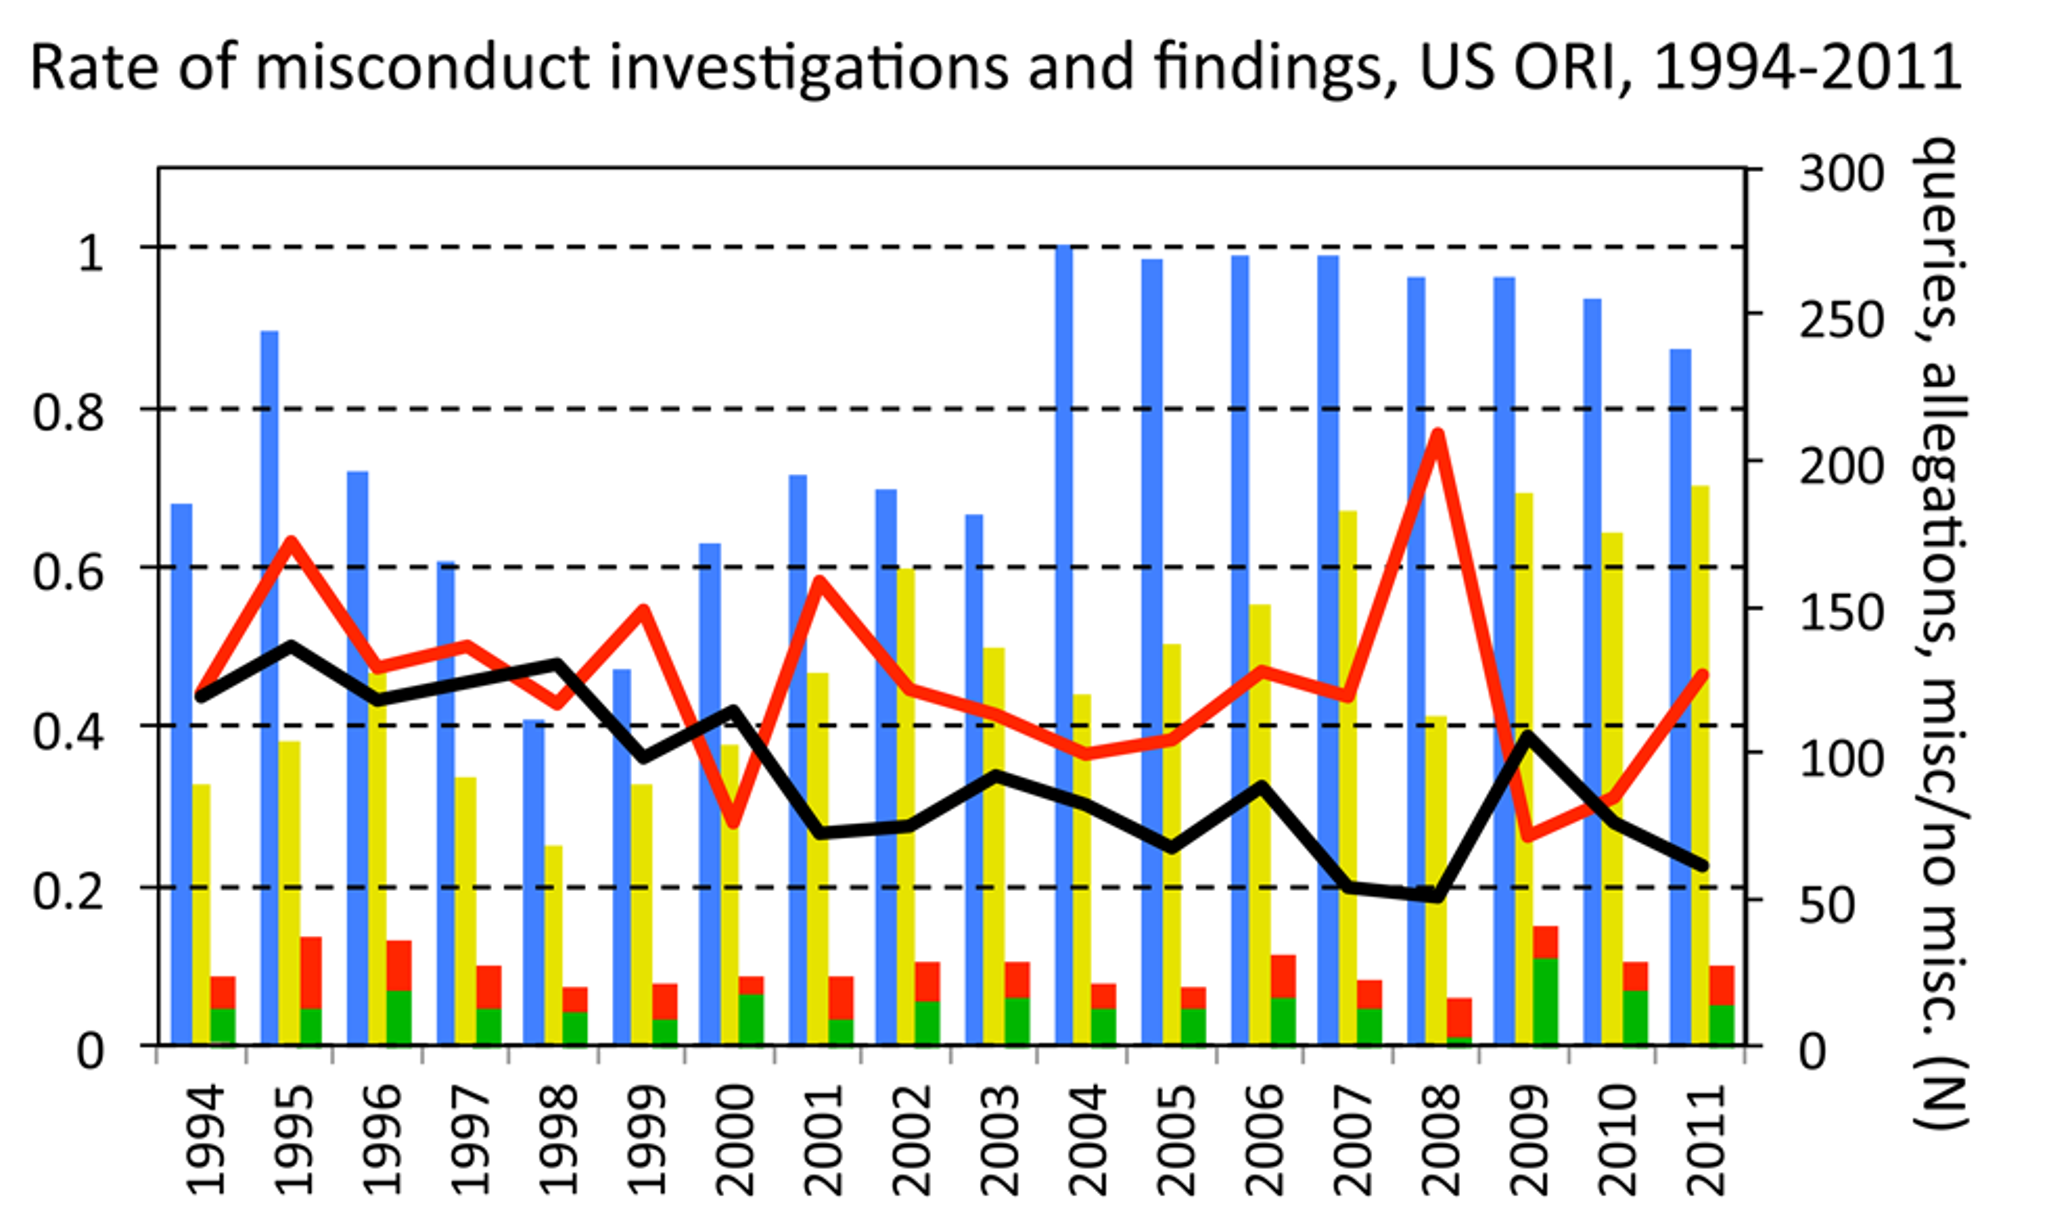 Queries, allegations, investigations, and findings of scientific misconduct made at the United States Office of Research Integrity, by year.